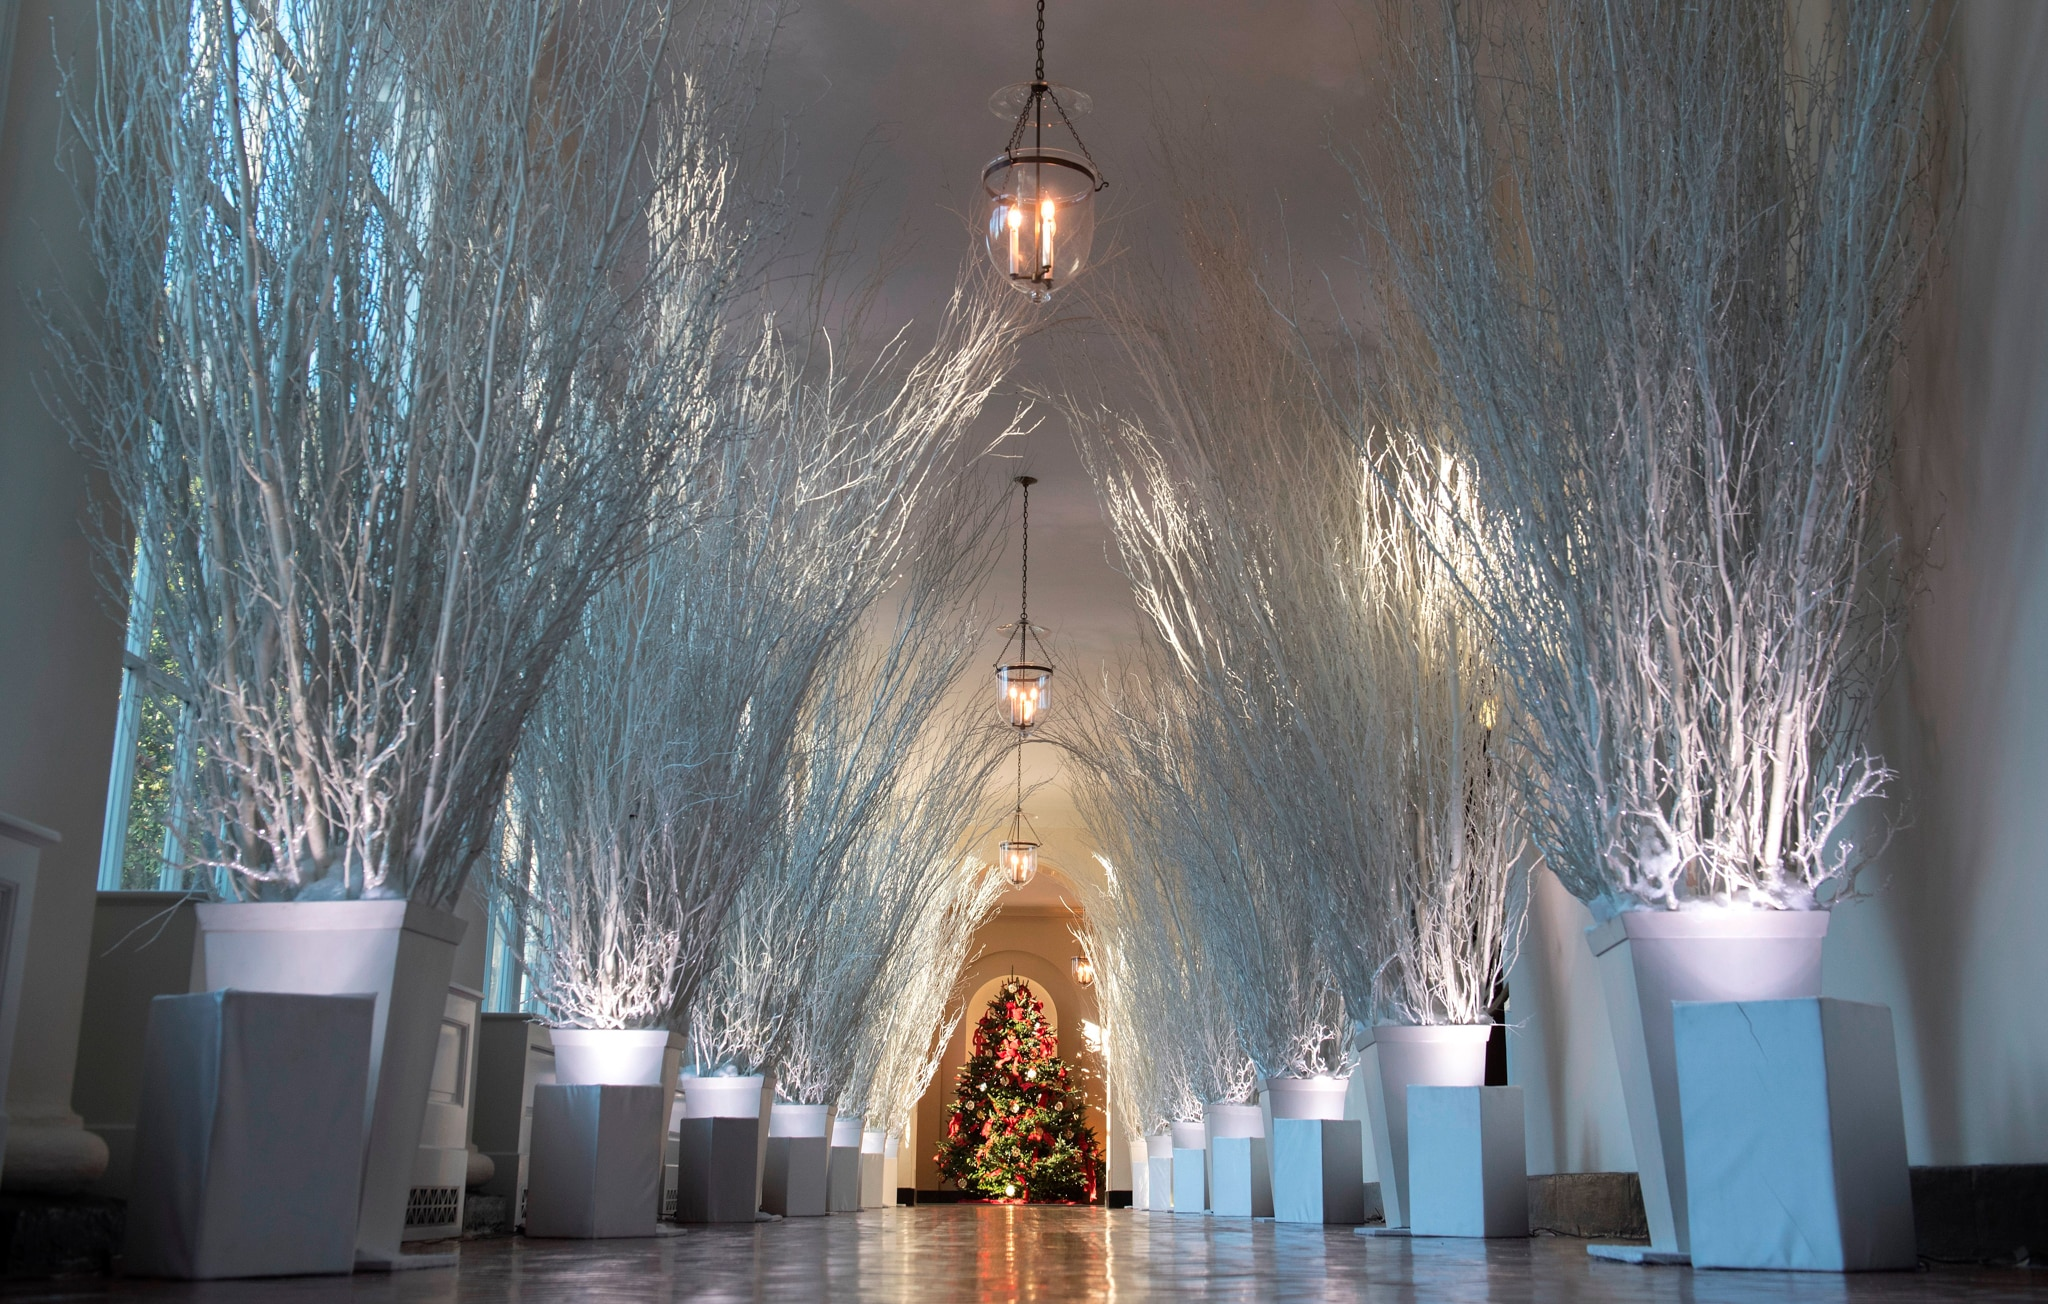 Grand hall lined with silver trees, with Christmas tree at end (© Saul Loeb/AFP/Getty Images)